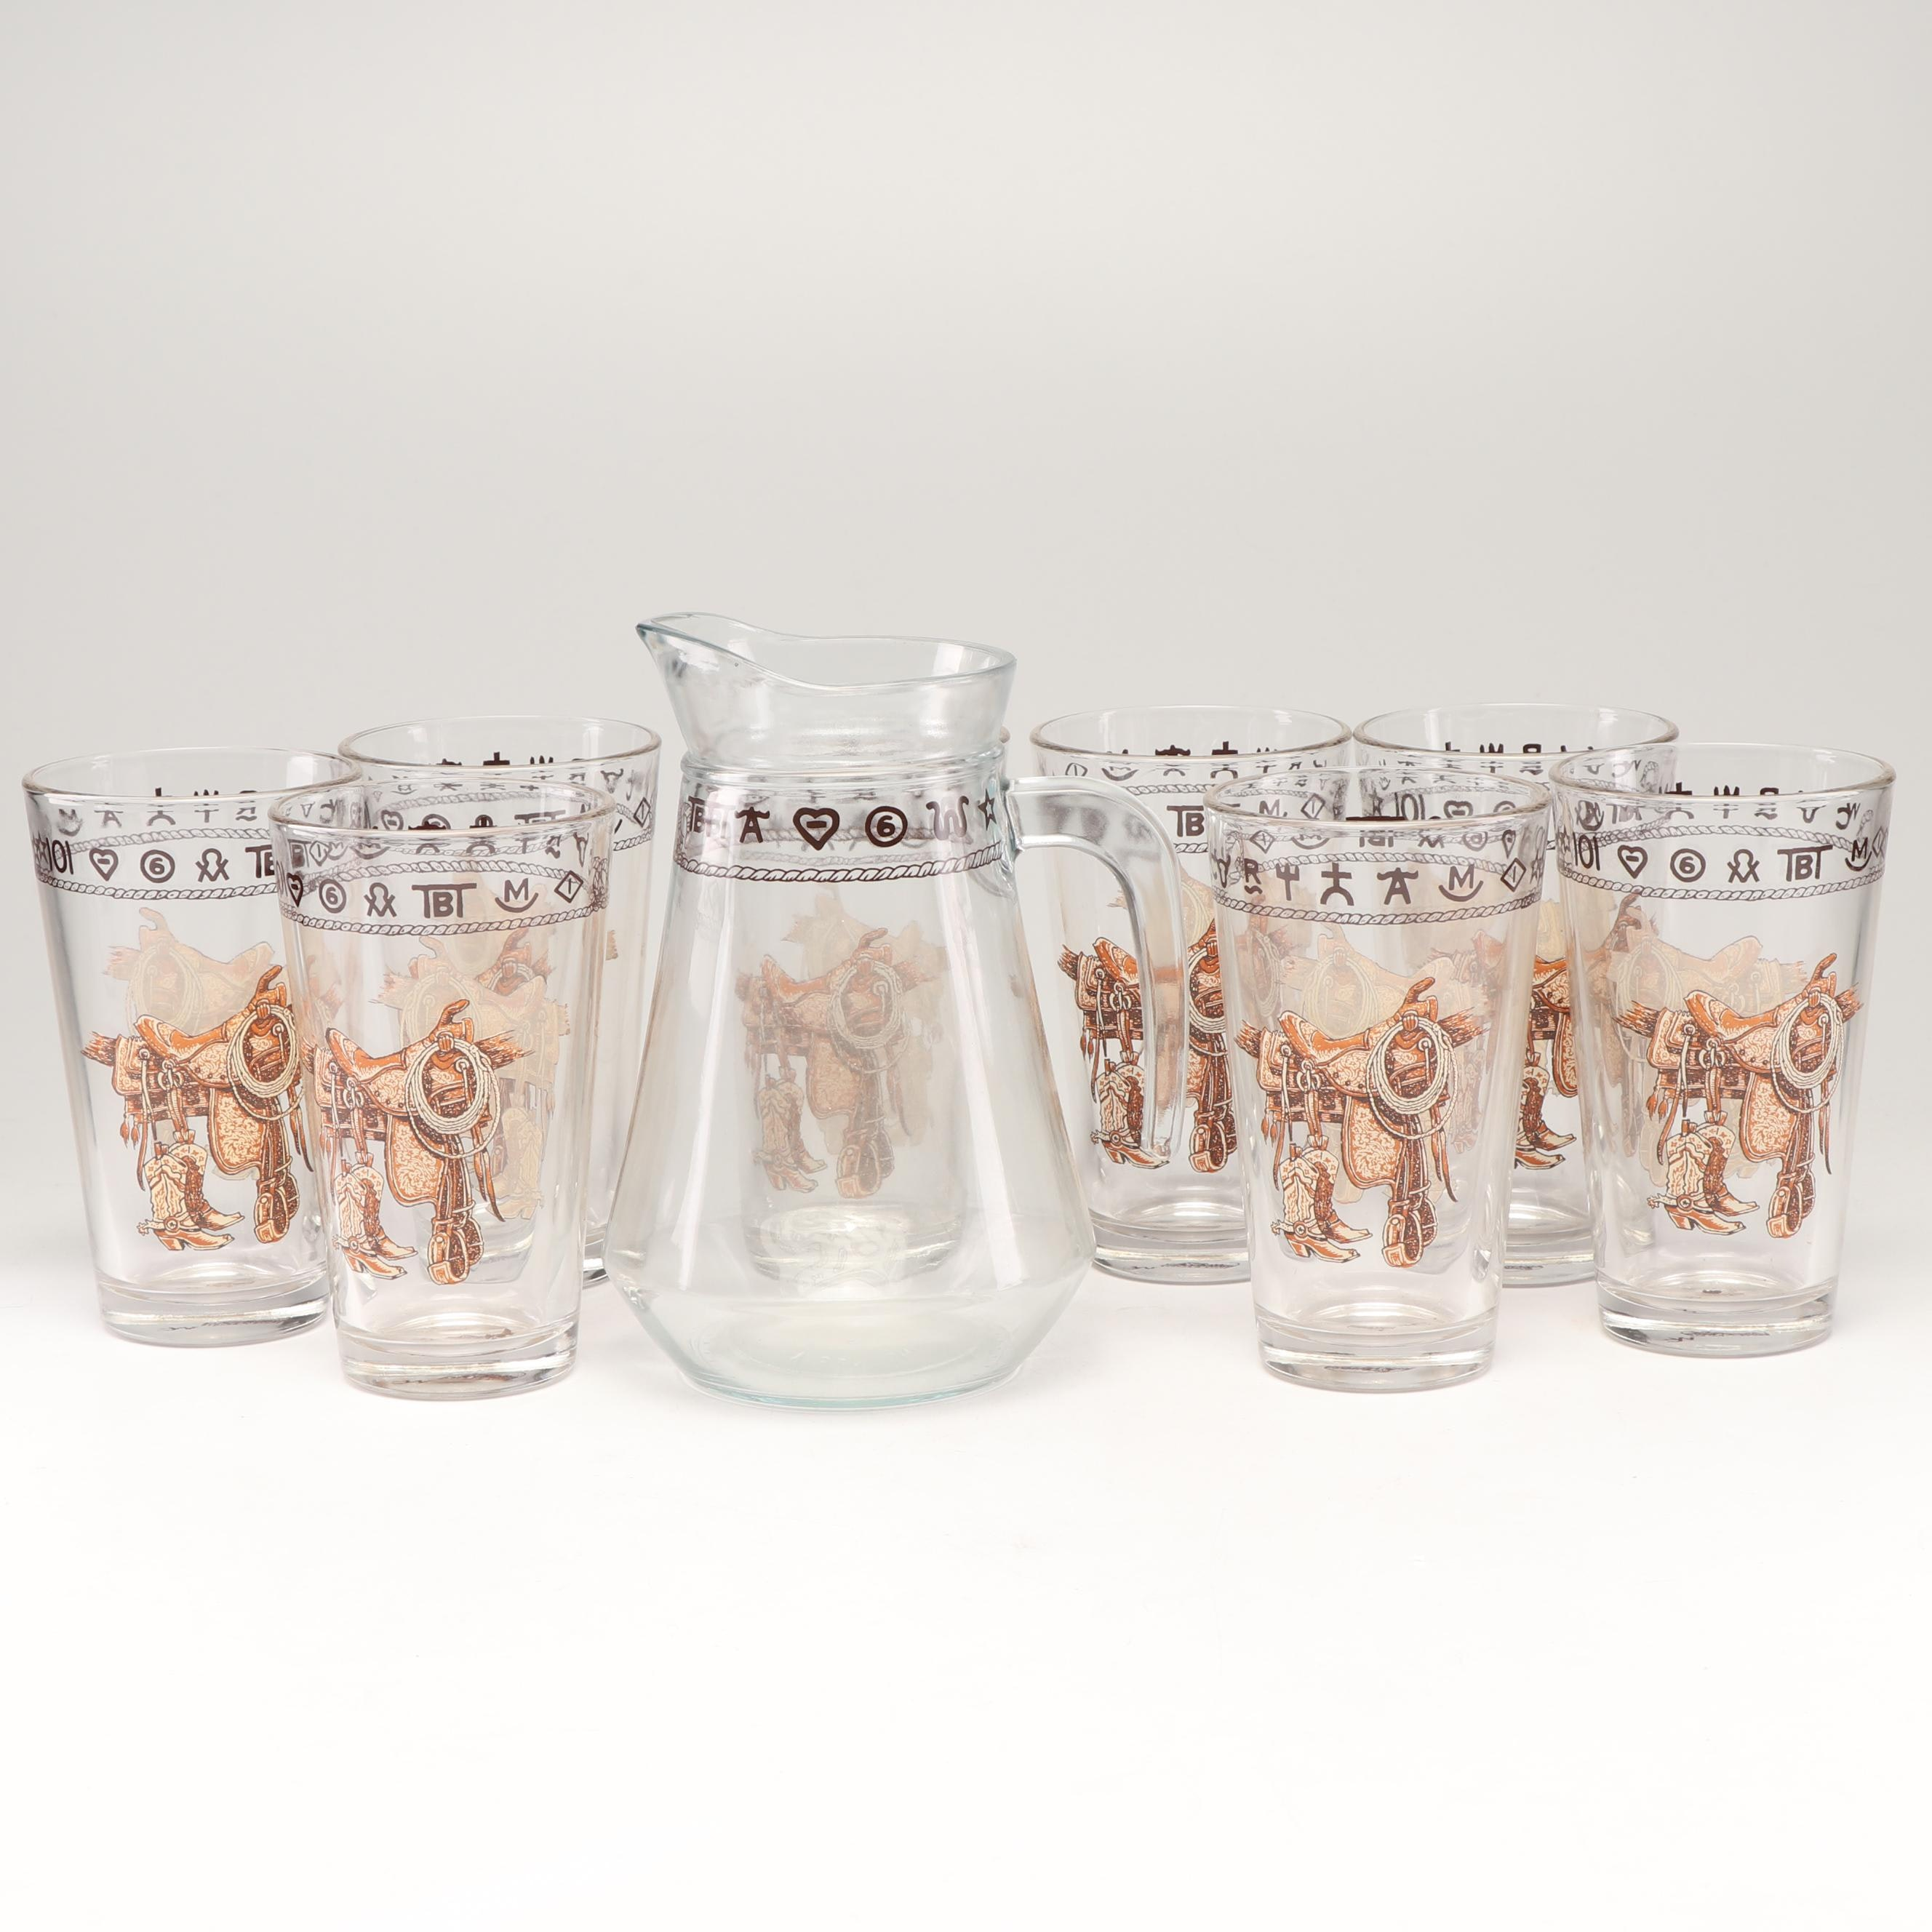 "Westward Ho ""Boots and Saddles"" Glassware with Pitcher"